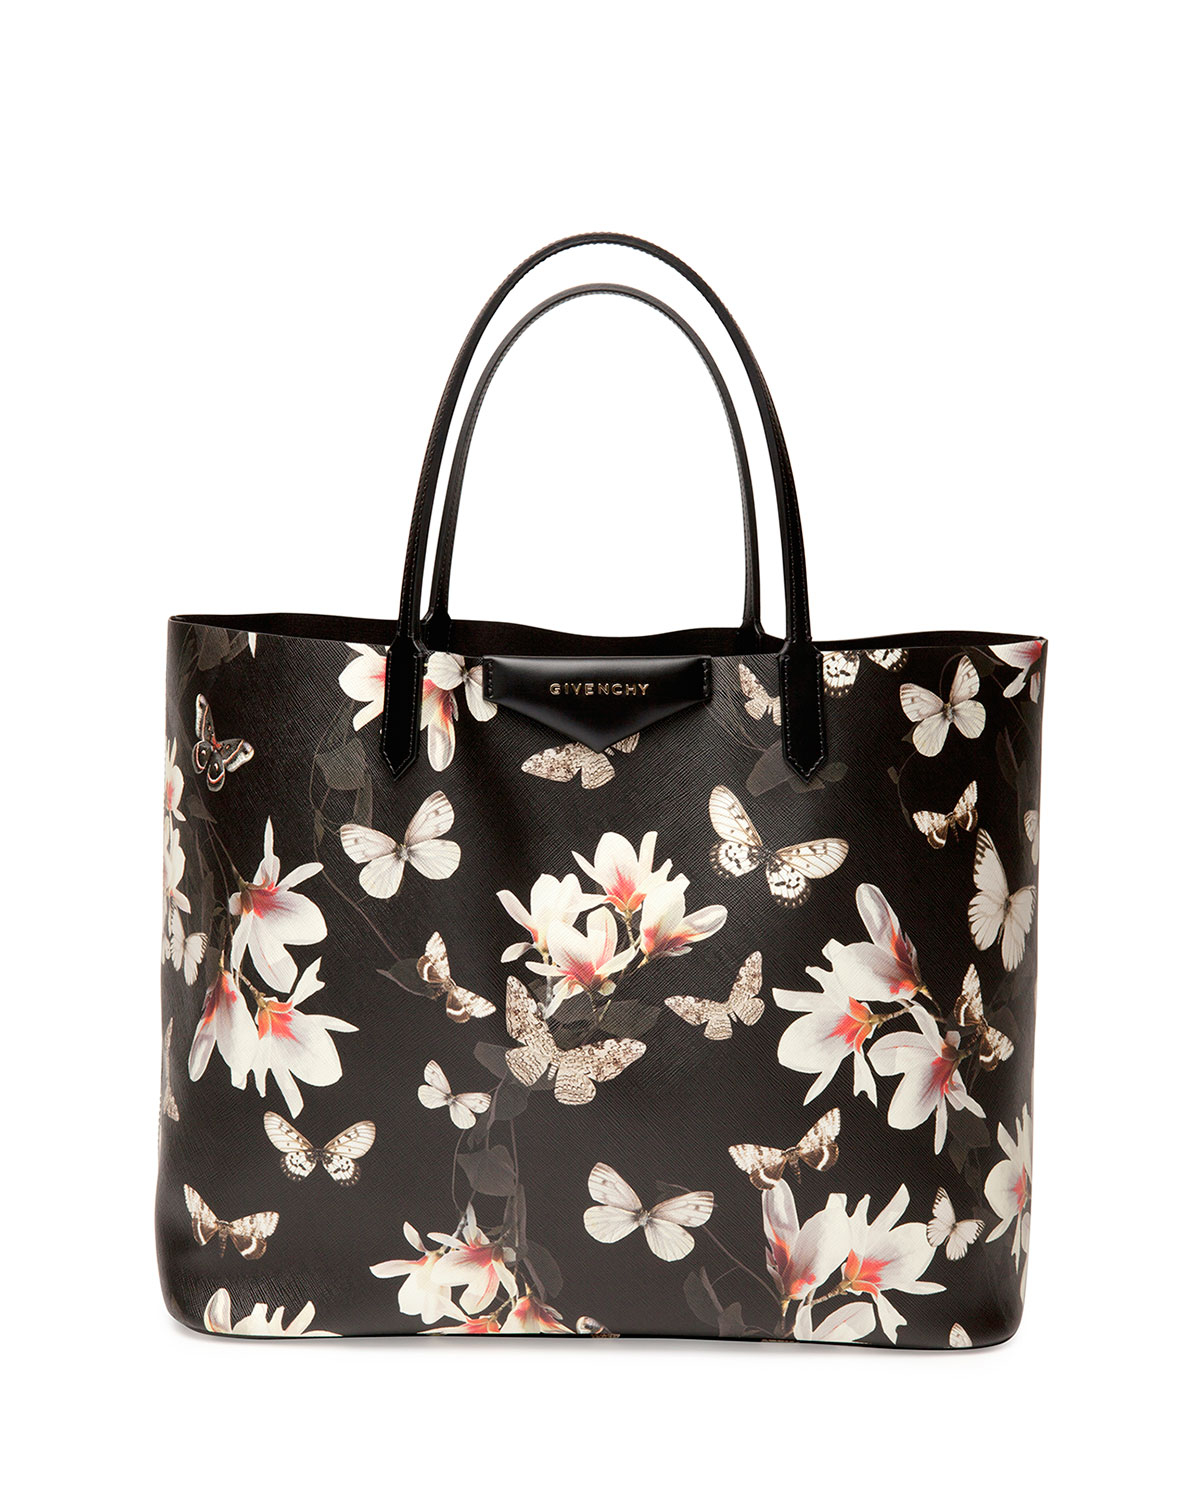 Givenchy Magnolia Tote In Floral Black Lyst